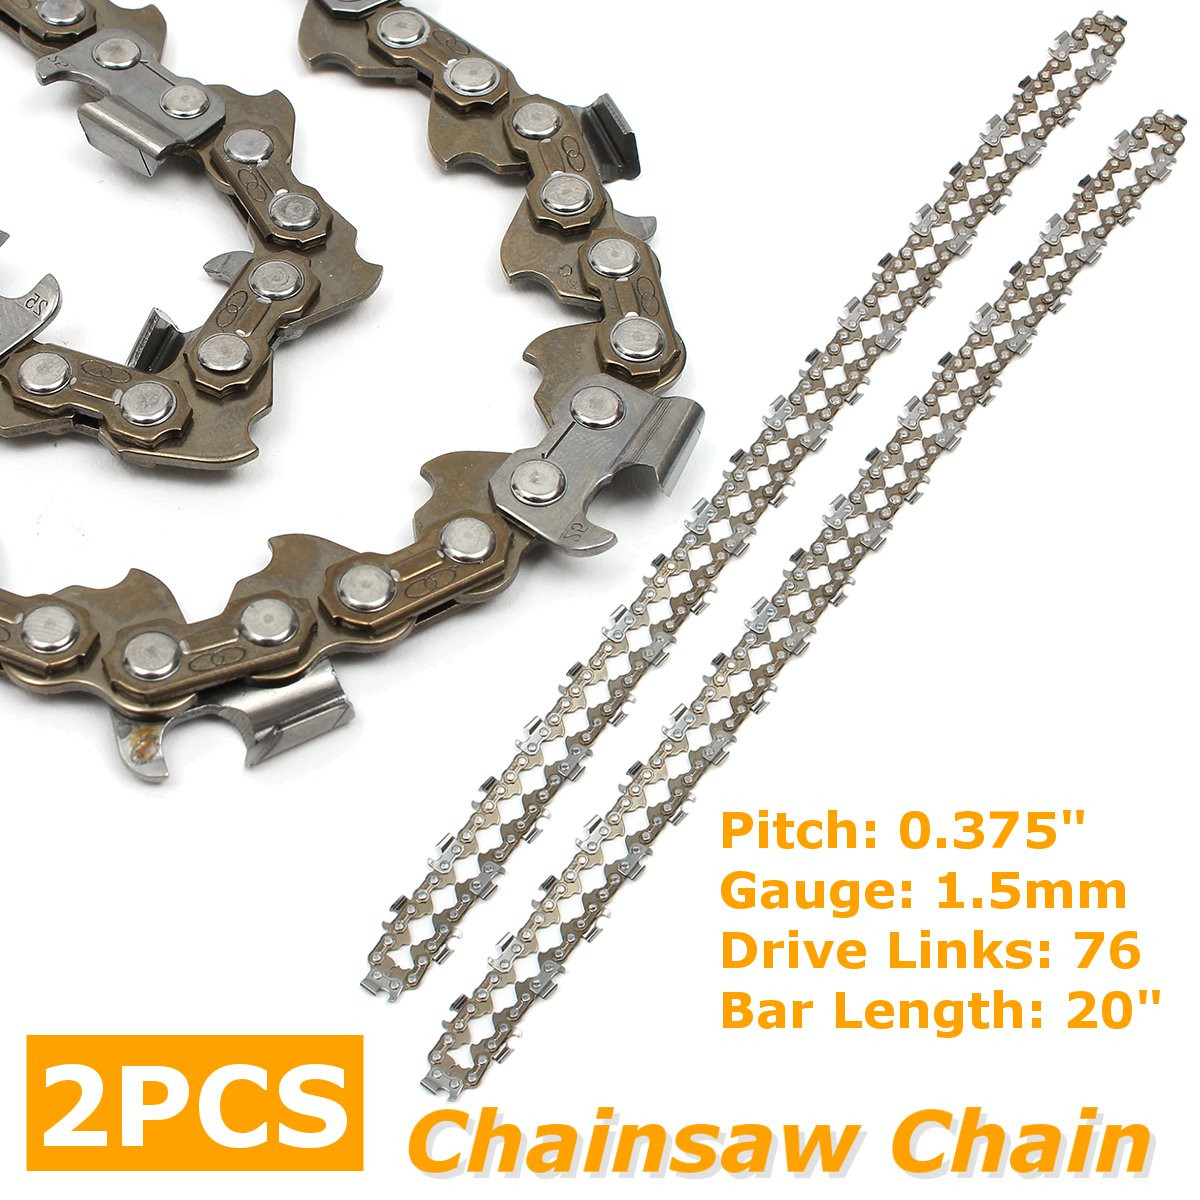 2pcs 20 Inch Chainsaw Chain Semi Chisel For Rotatech Chainsaw Saw Chain Fits Timberpro 62cc 0.375'' 0.058